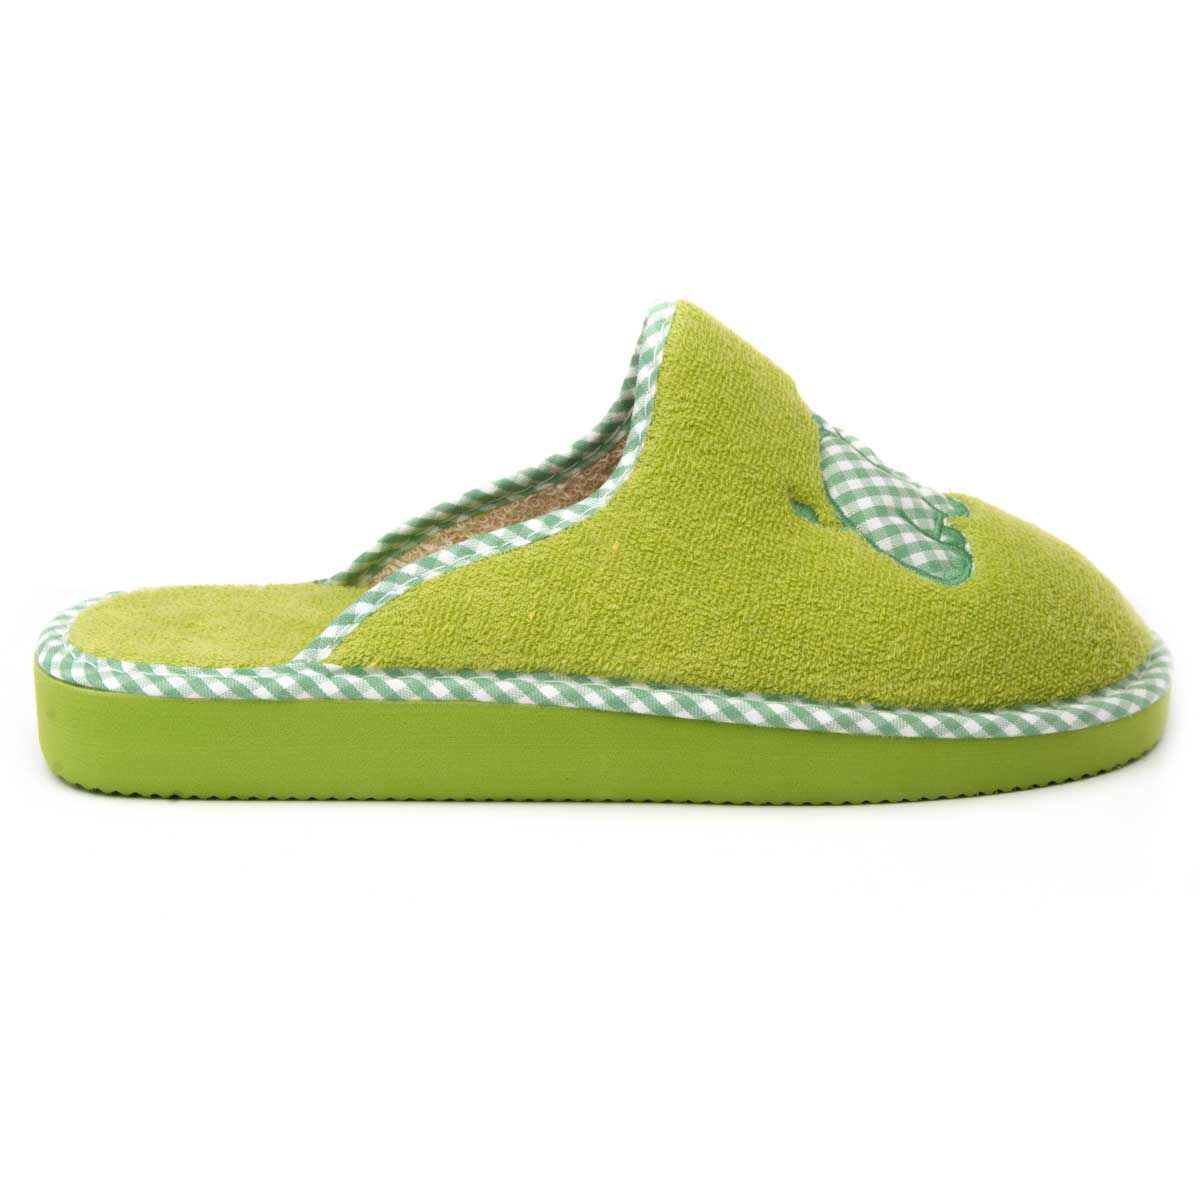 Northome Comfortable Slipper in Green